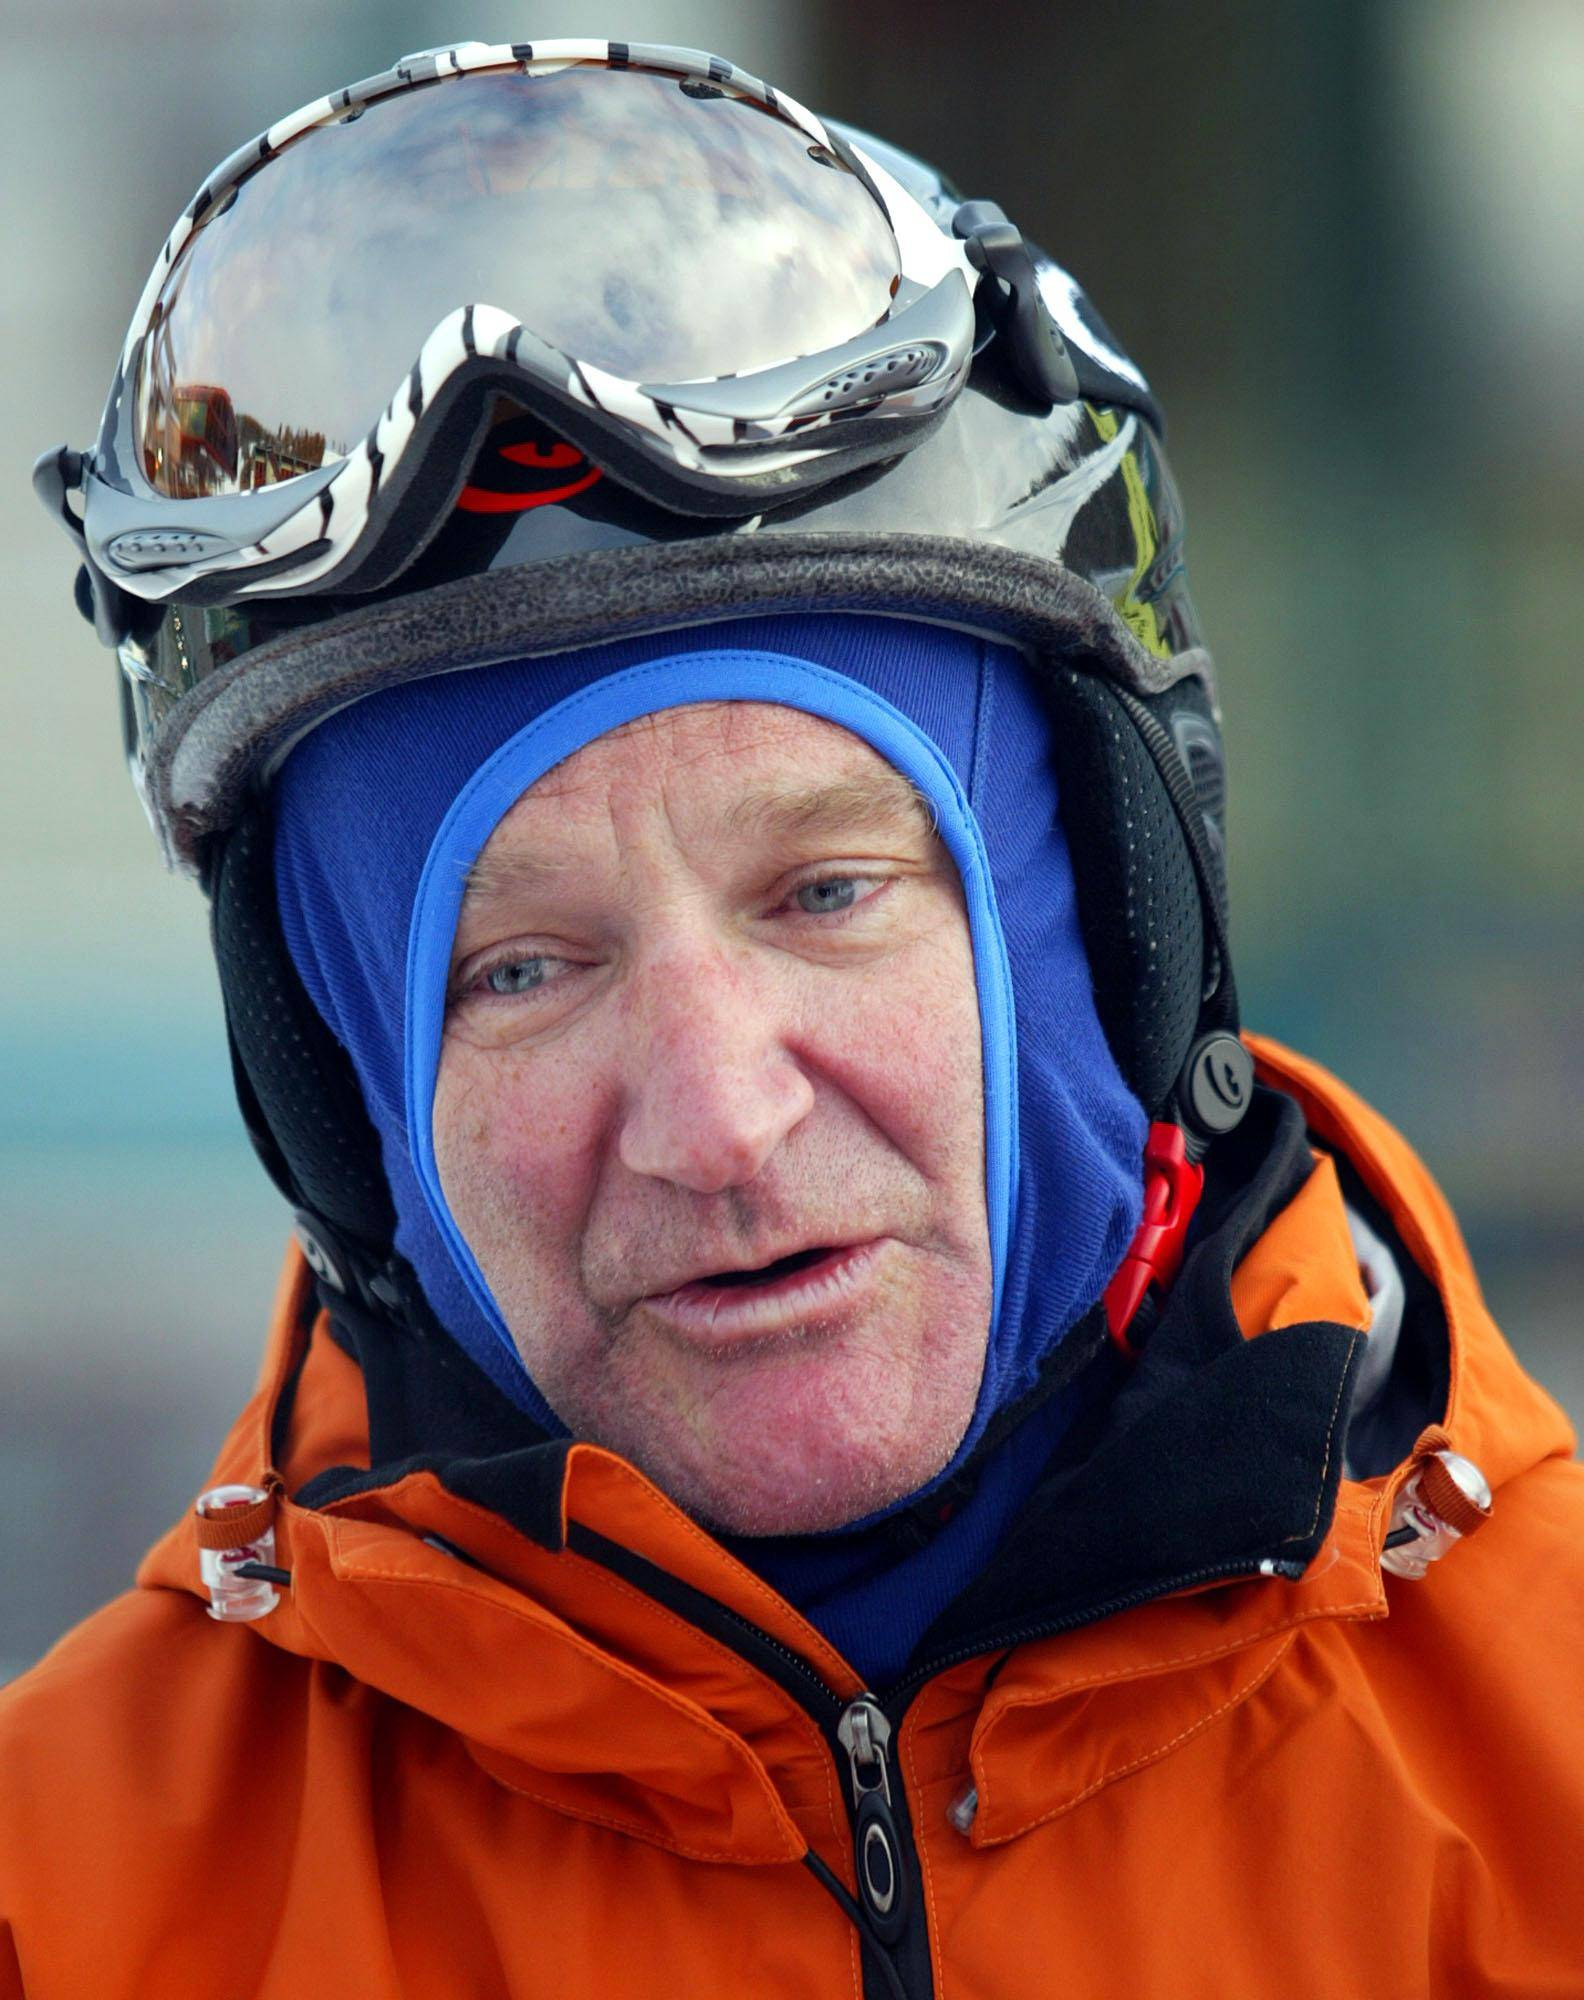 Actor Robin Williams sports a helmet and goggles as he arrives at a ski resort in Banff, Alberta, Friday, Jan. 9, 2004. Williams and other stars are in Banff as part of the Fairmont Banff Springs Sports Invitational benefiting the Waterkeepers Alliance.